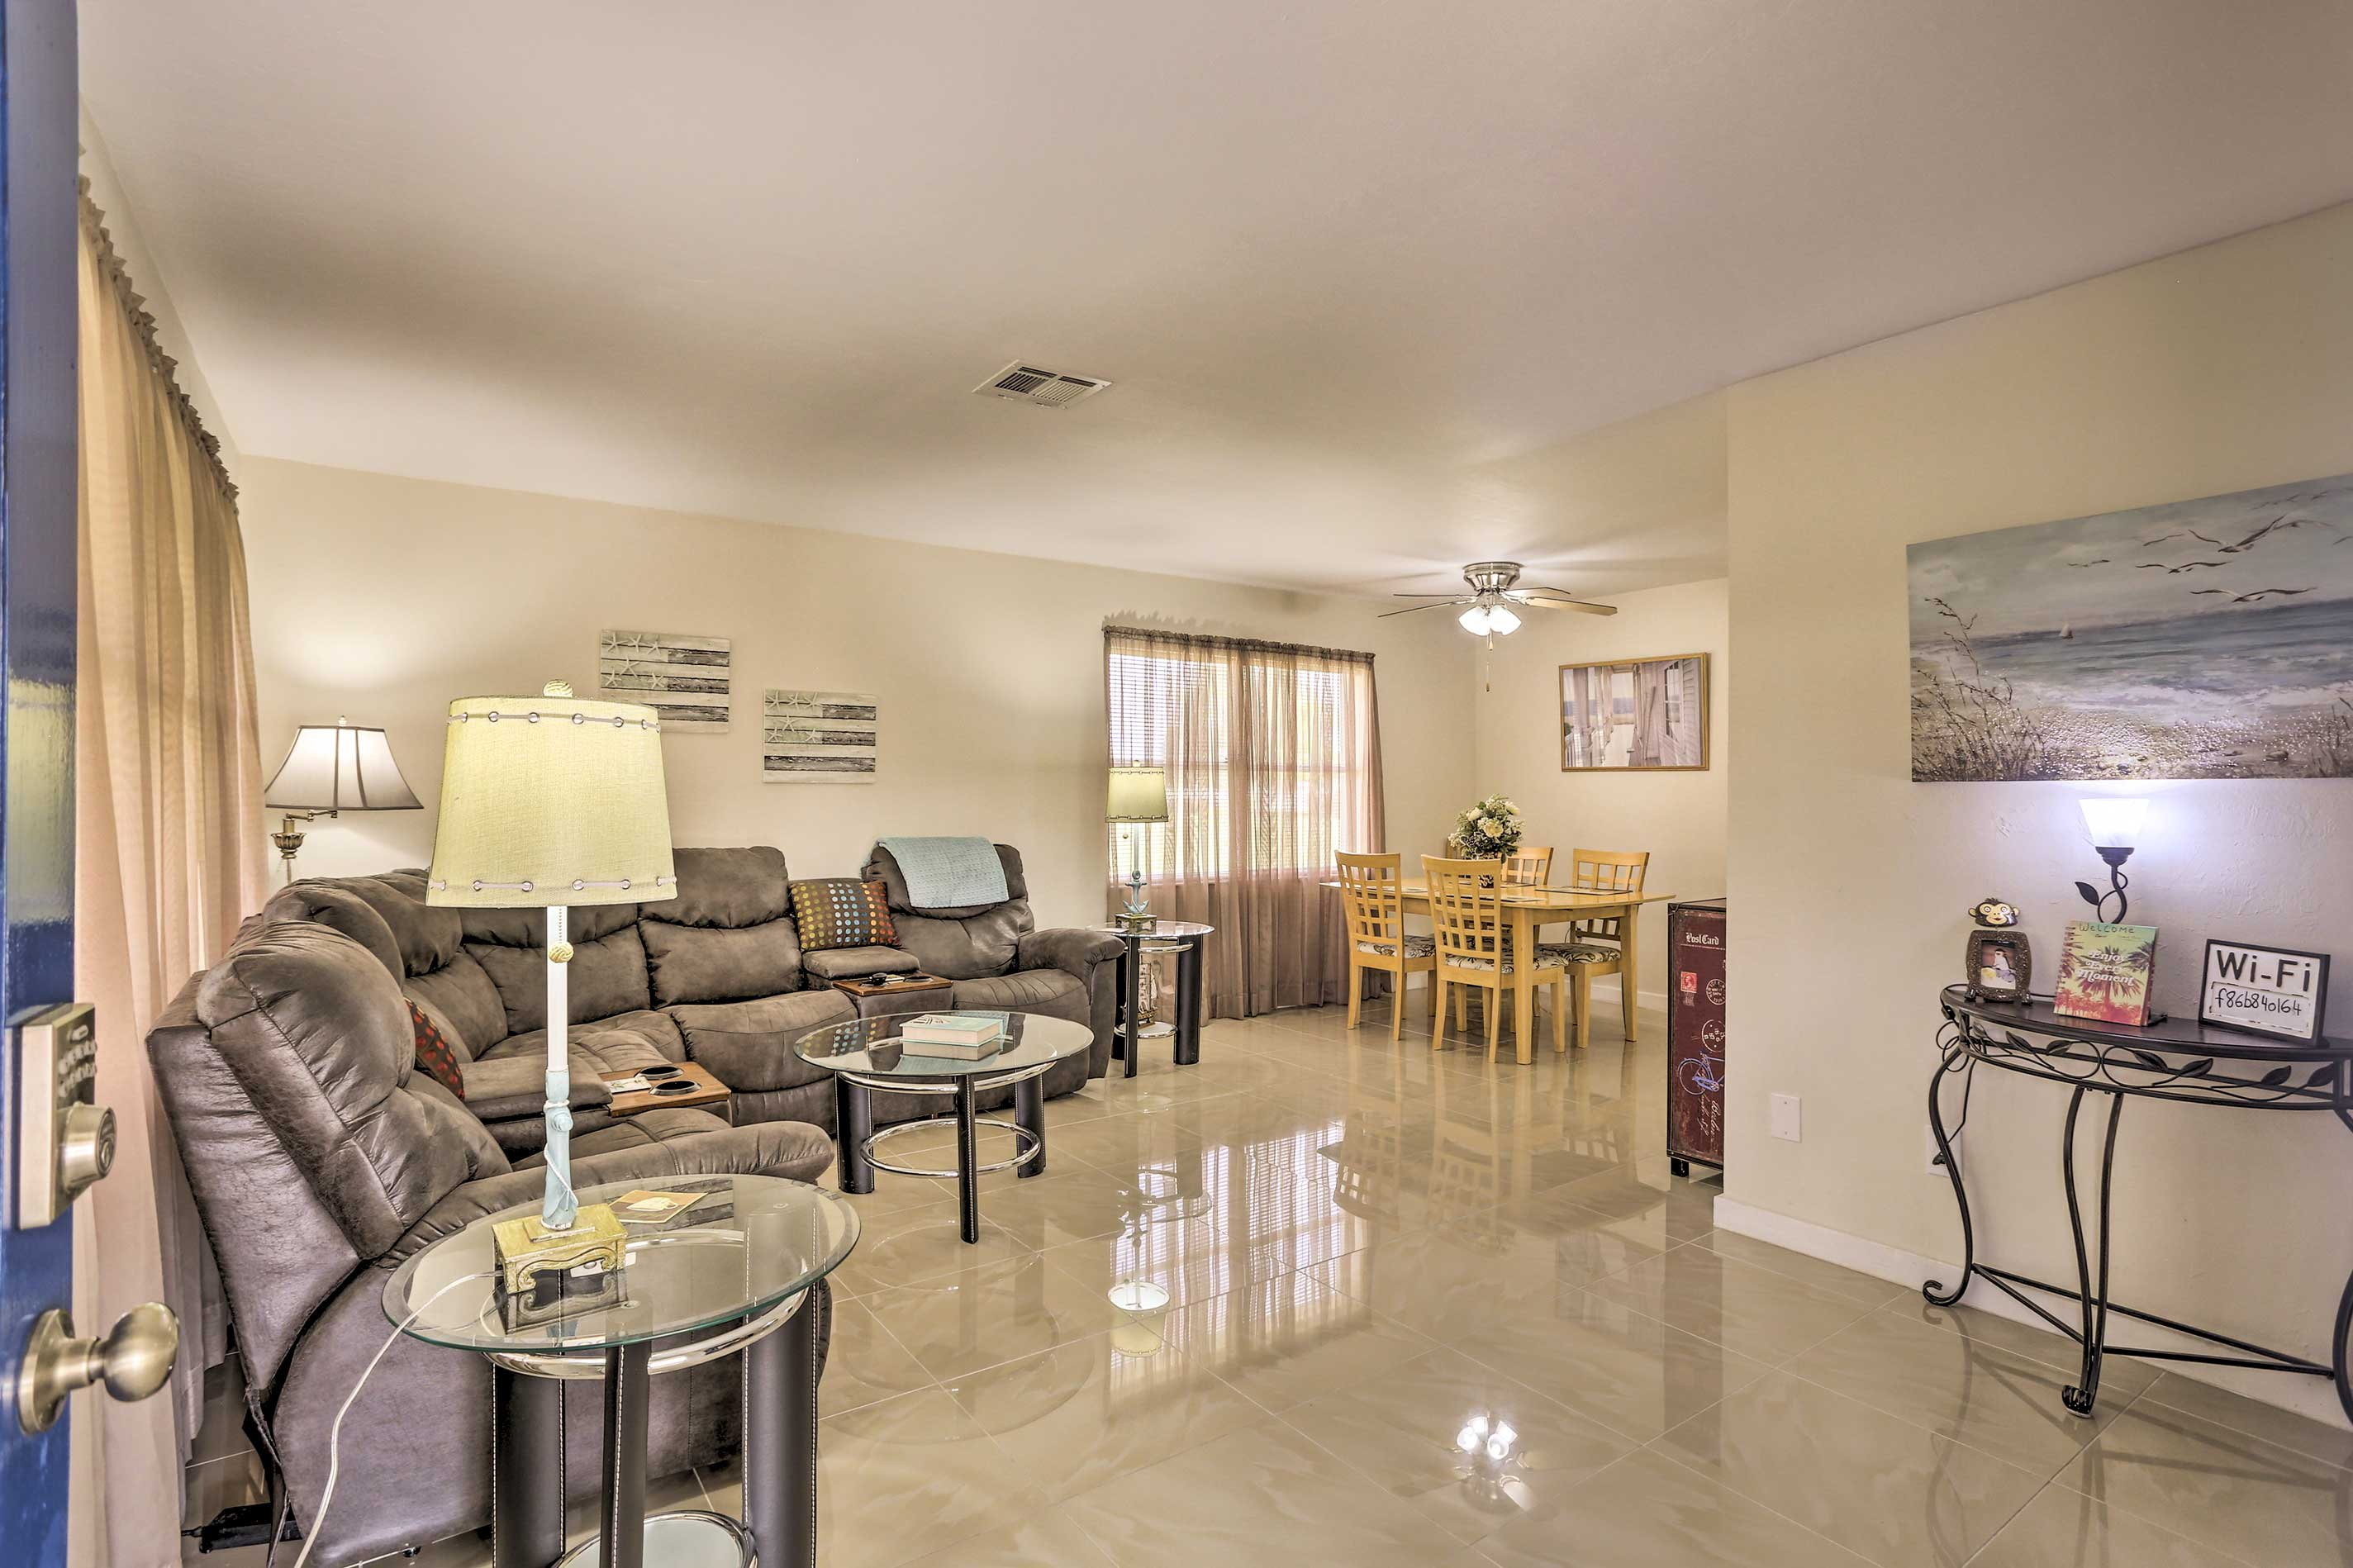 The spacious floor plan makes it easy to spend time together.